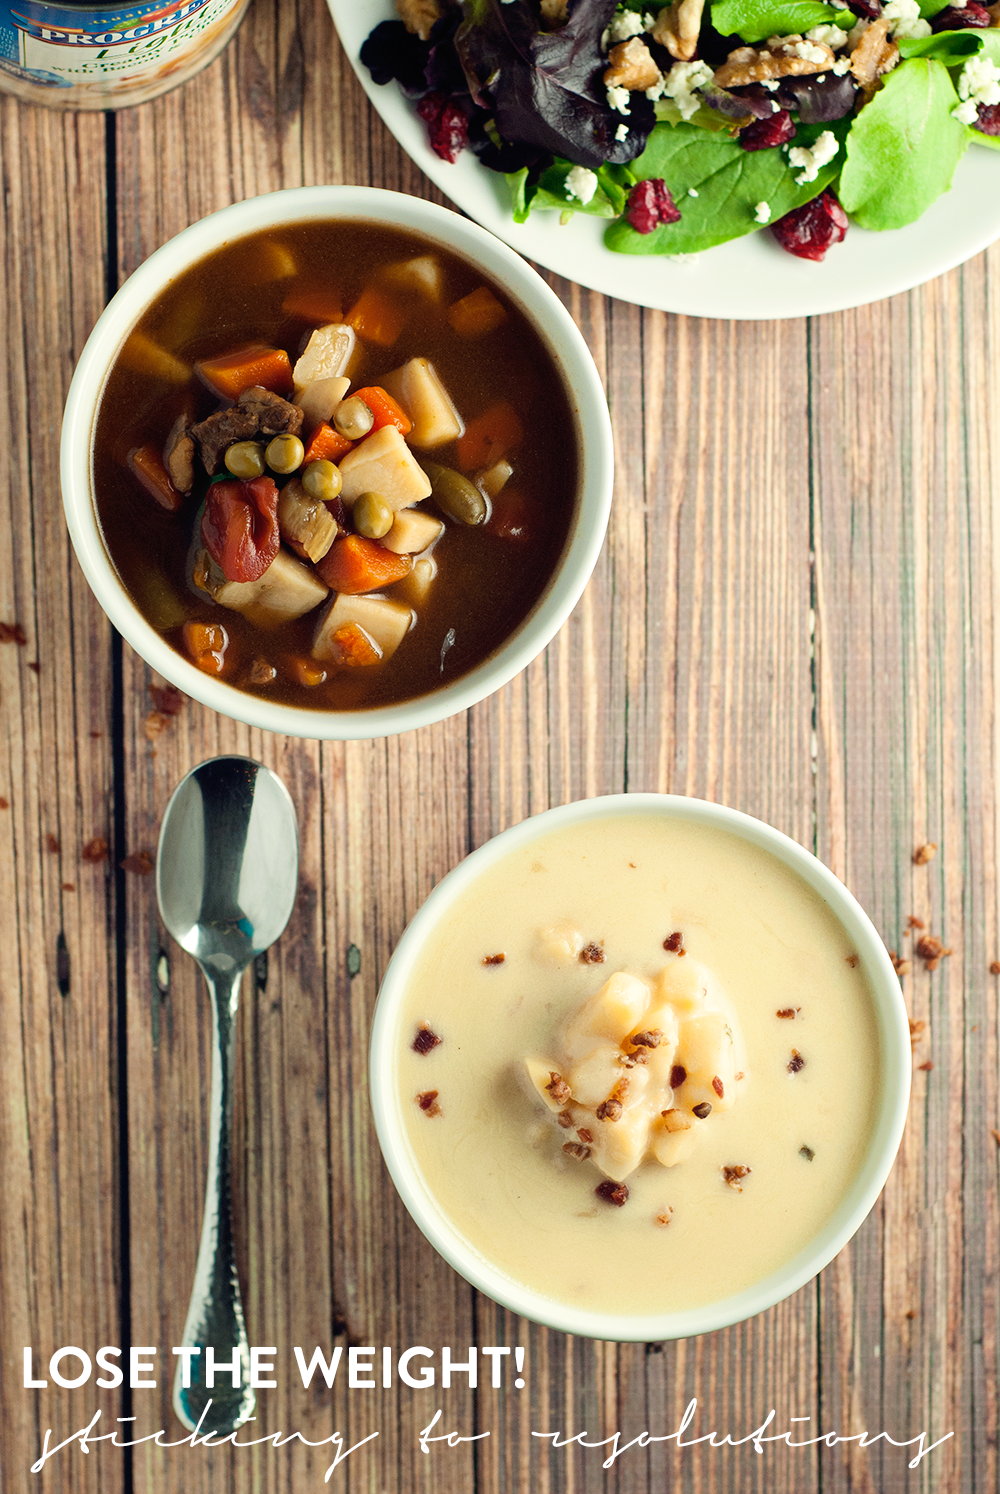 Keep those resolutions in check with delicious Progresso­™ Light soups!